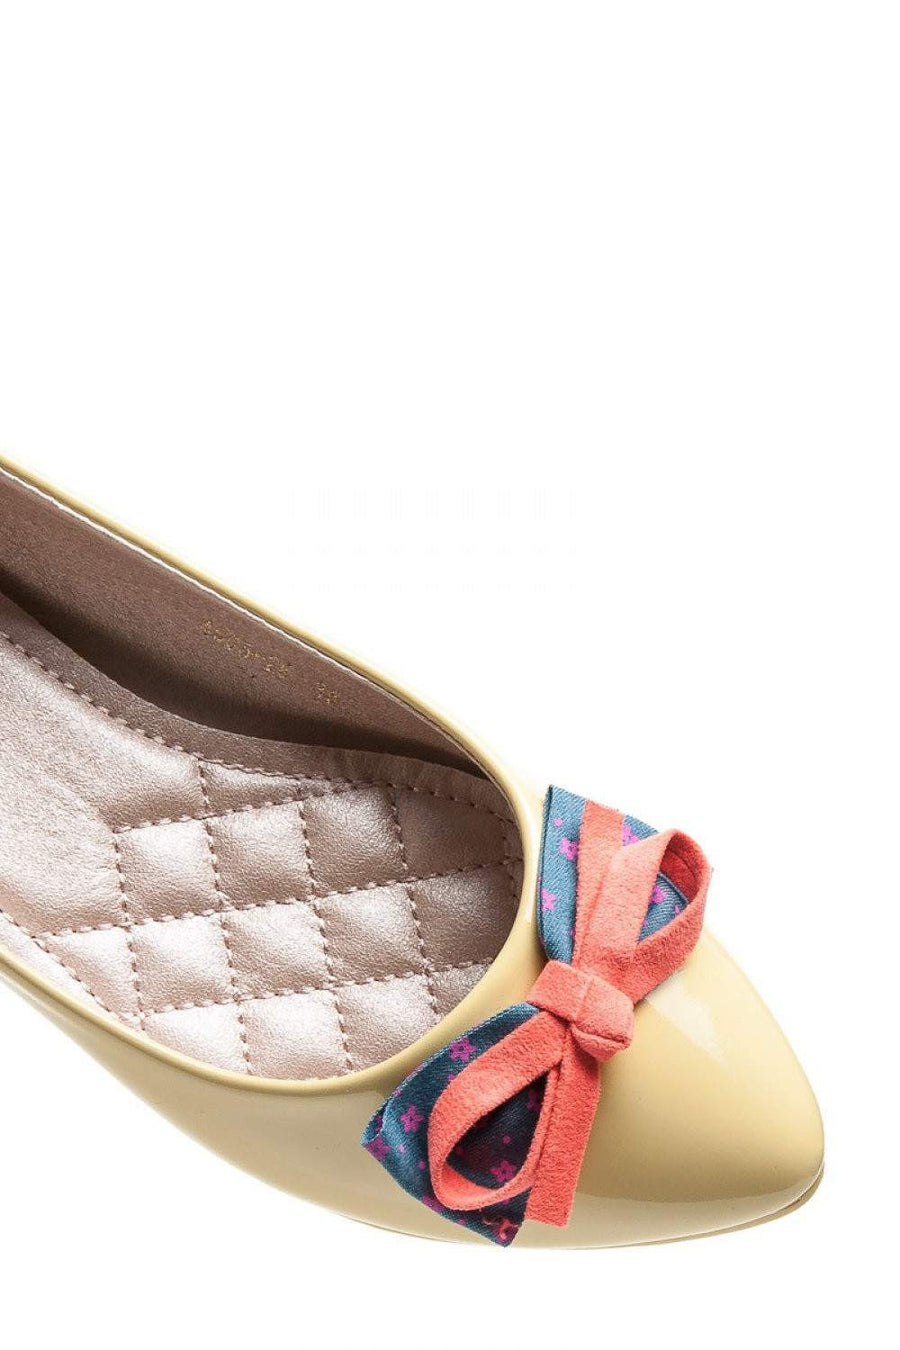 Ballet flats 53386 Zoki-Ballet Flats, Ballet Pumps for Women-Zoki-Très Fancy